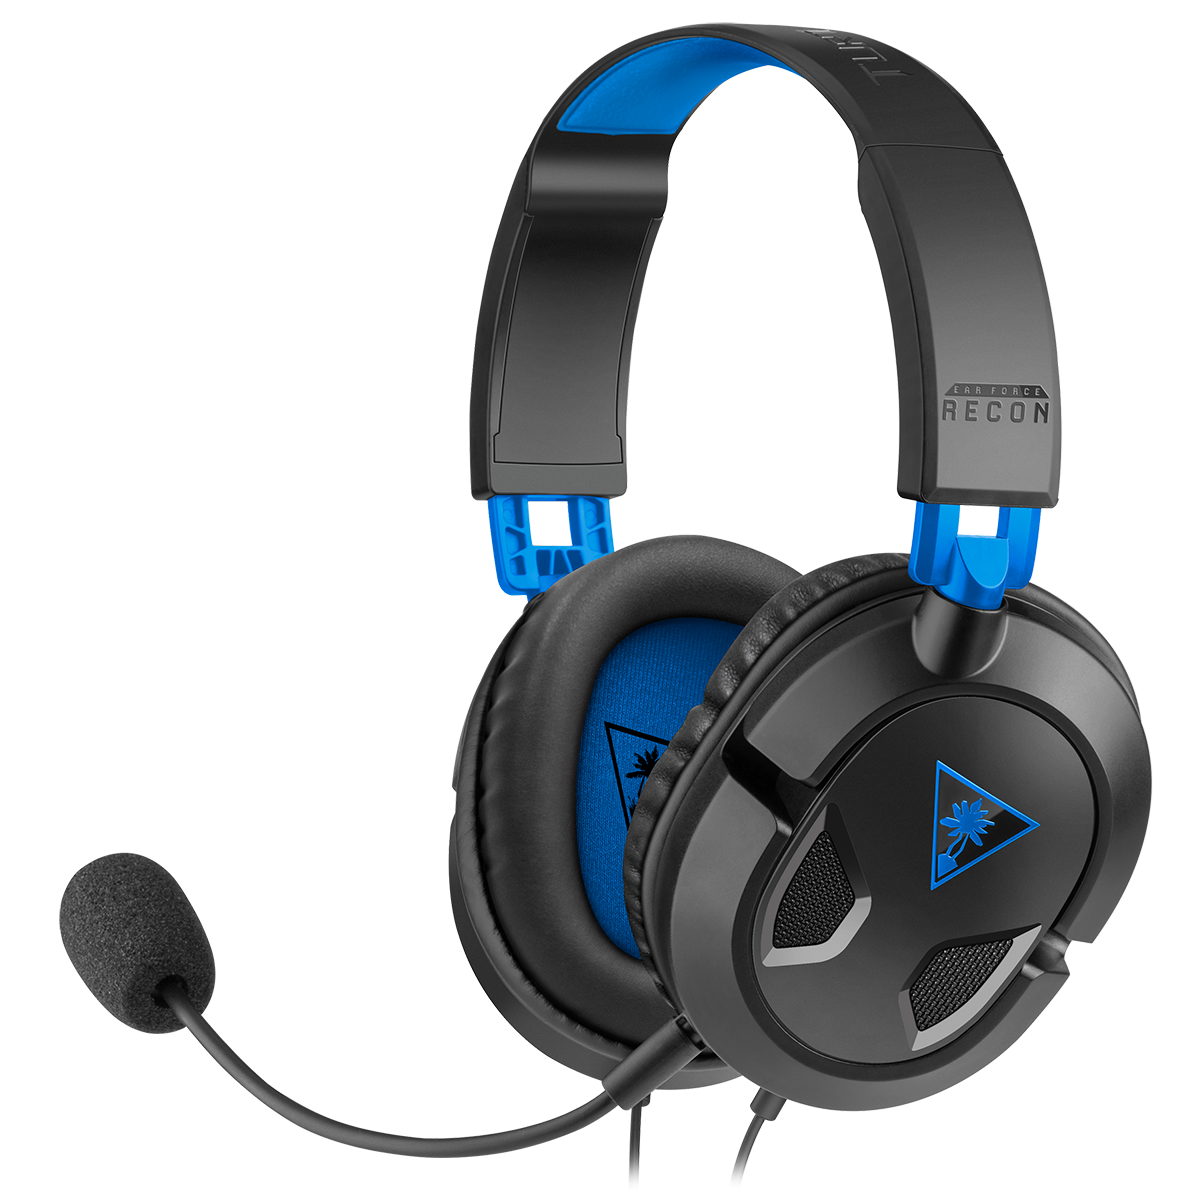 Recon 50p Gaming Headset For Ps4 And Xbox One Turtle Beach